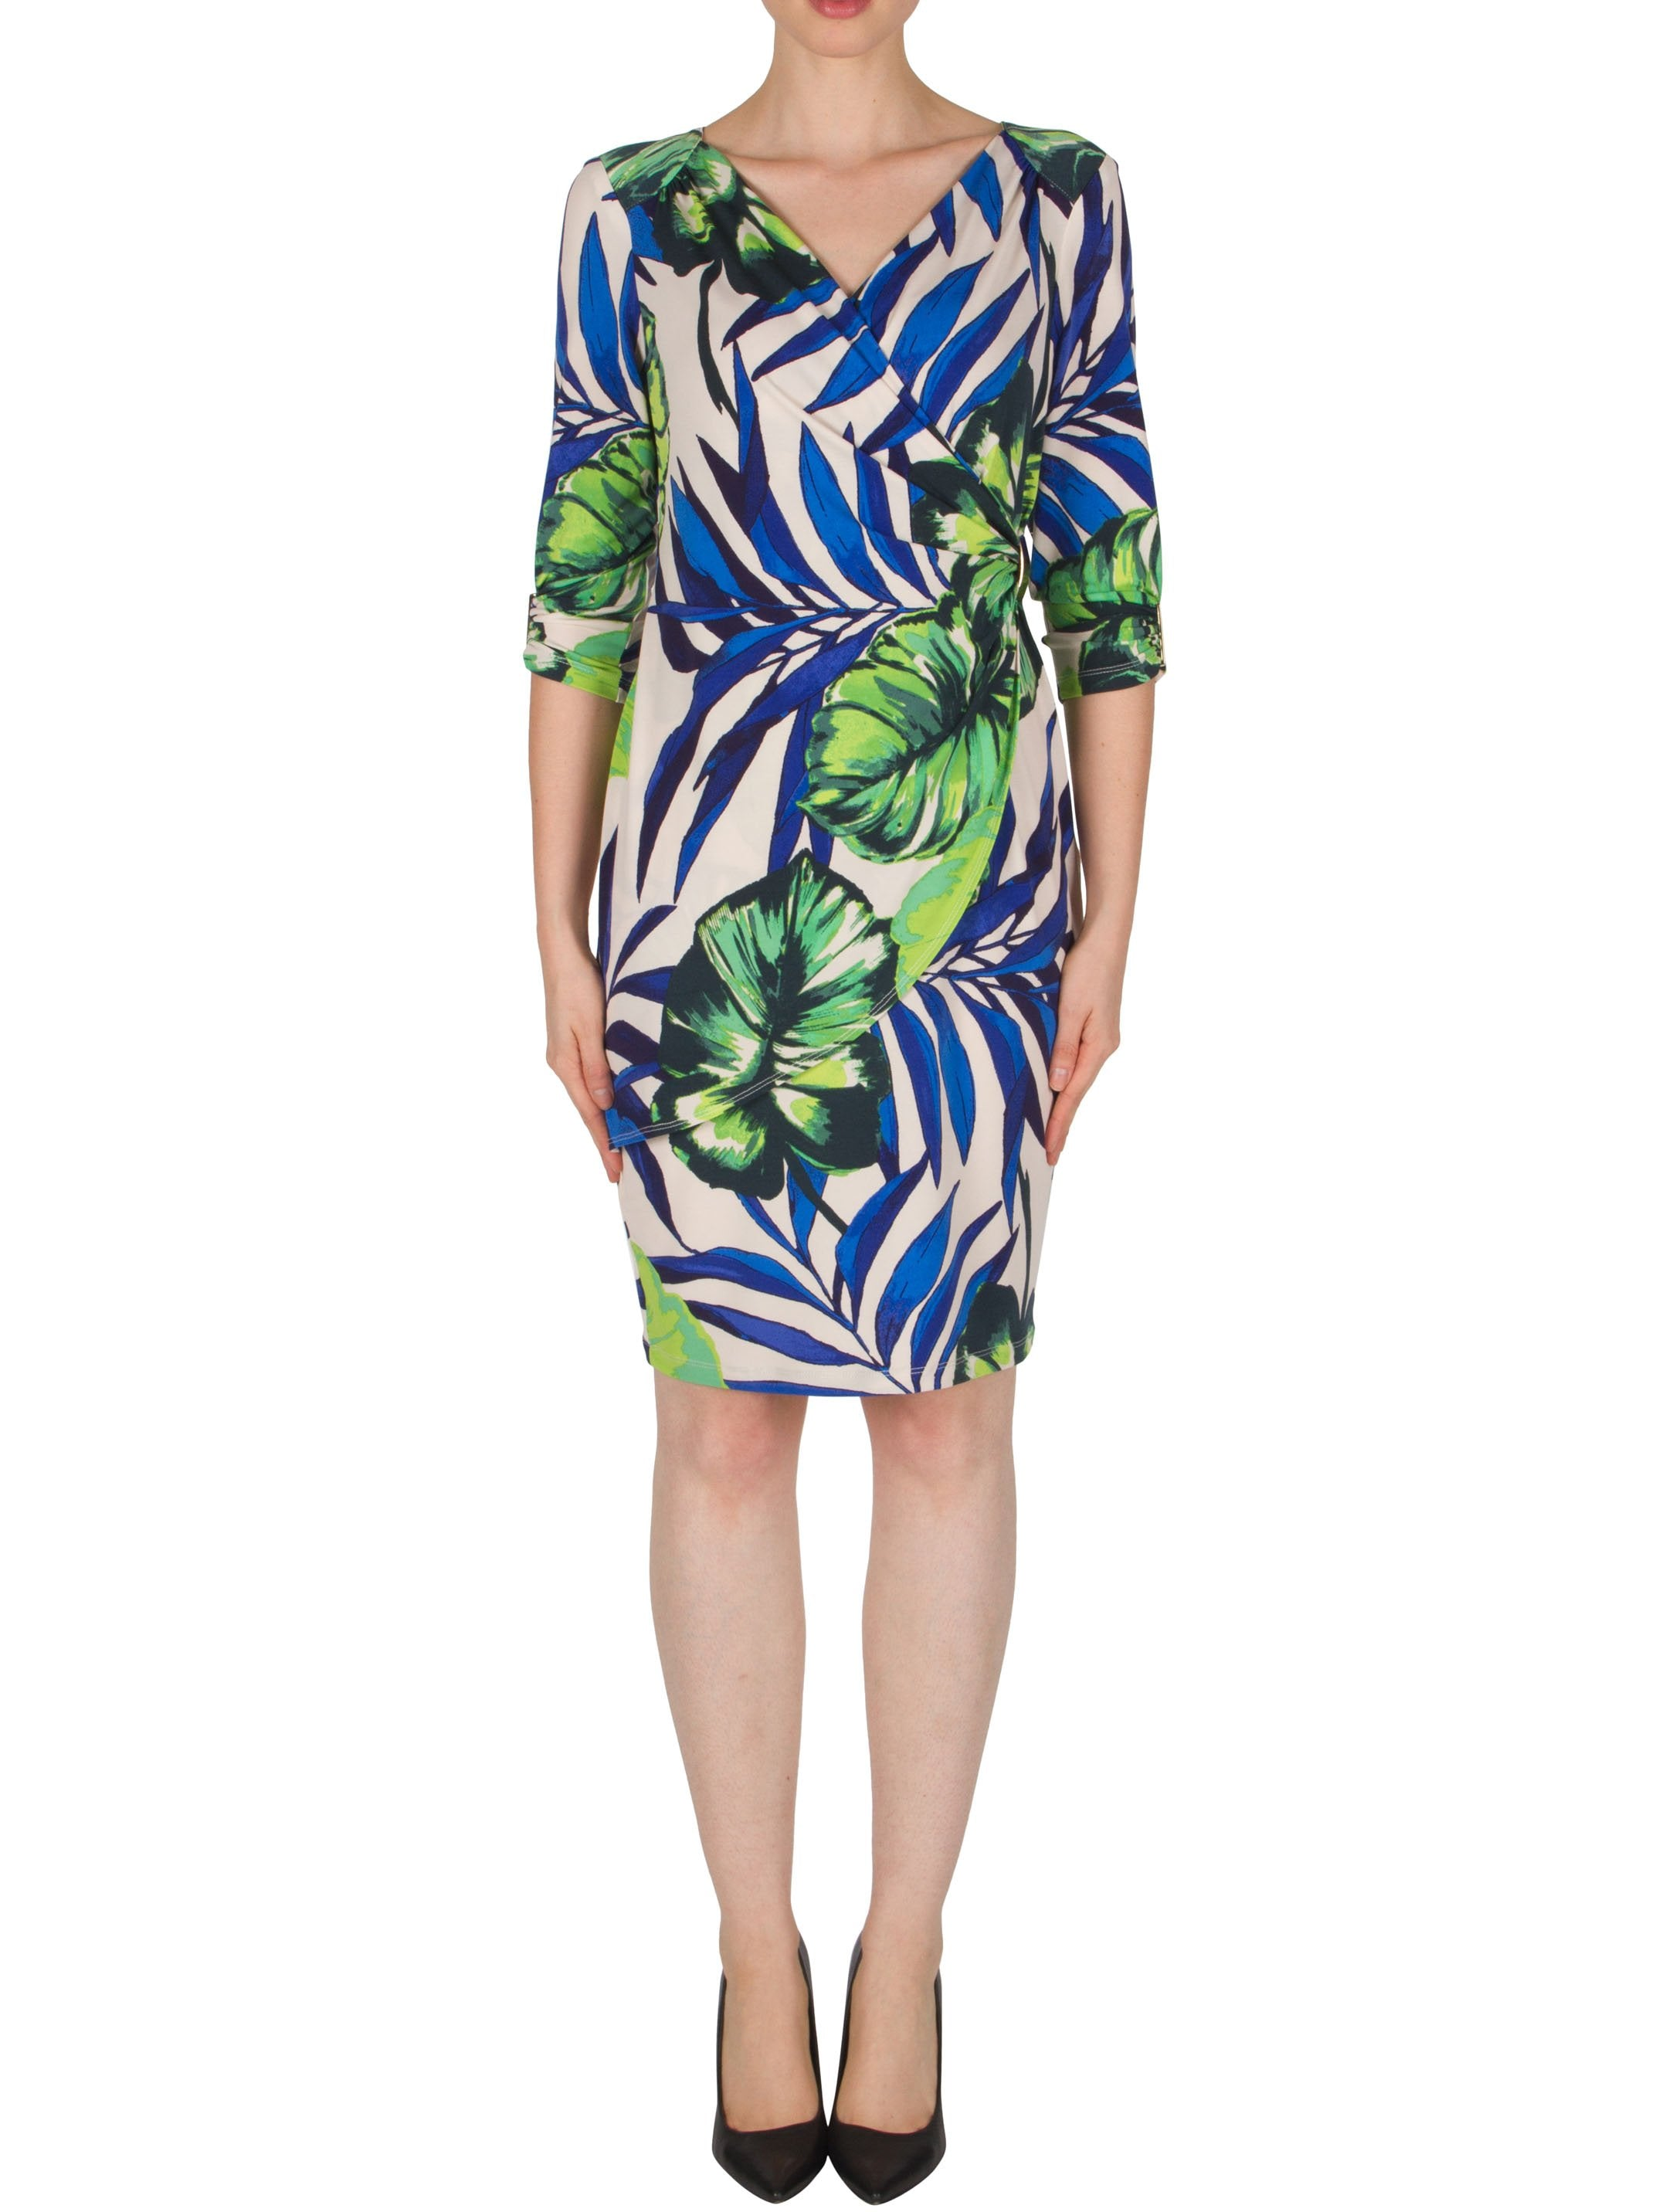 Joseph Ribkoff Cream/Blue/Green Tropical Leaf Print Wrap Dress